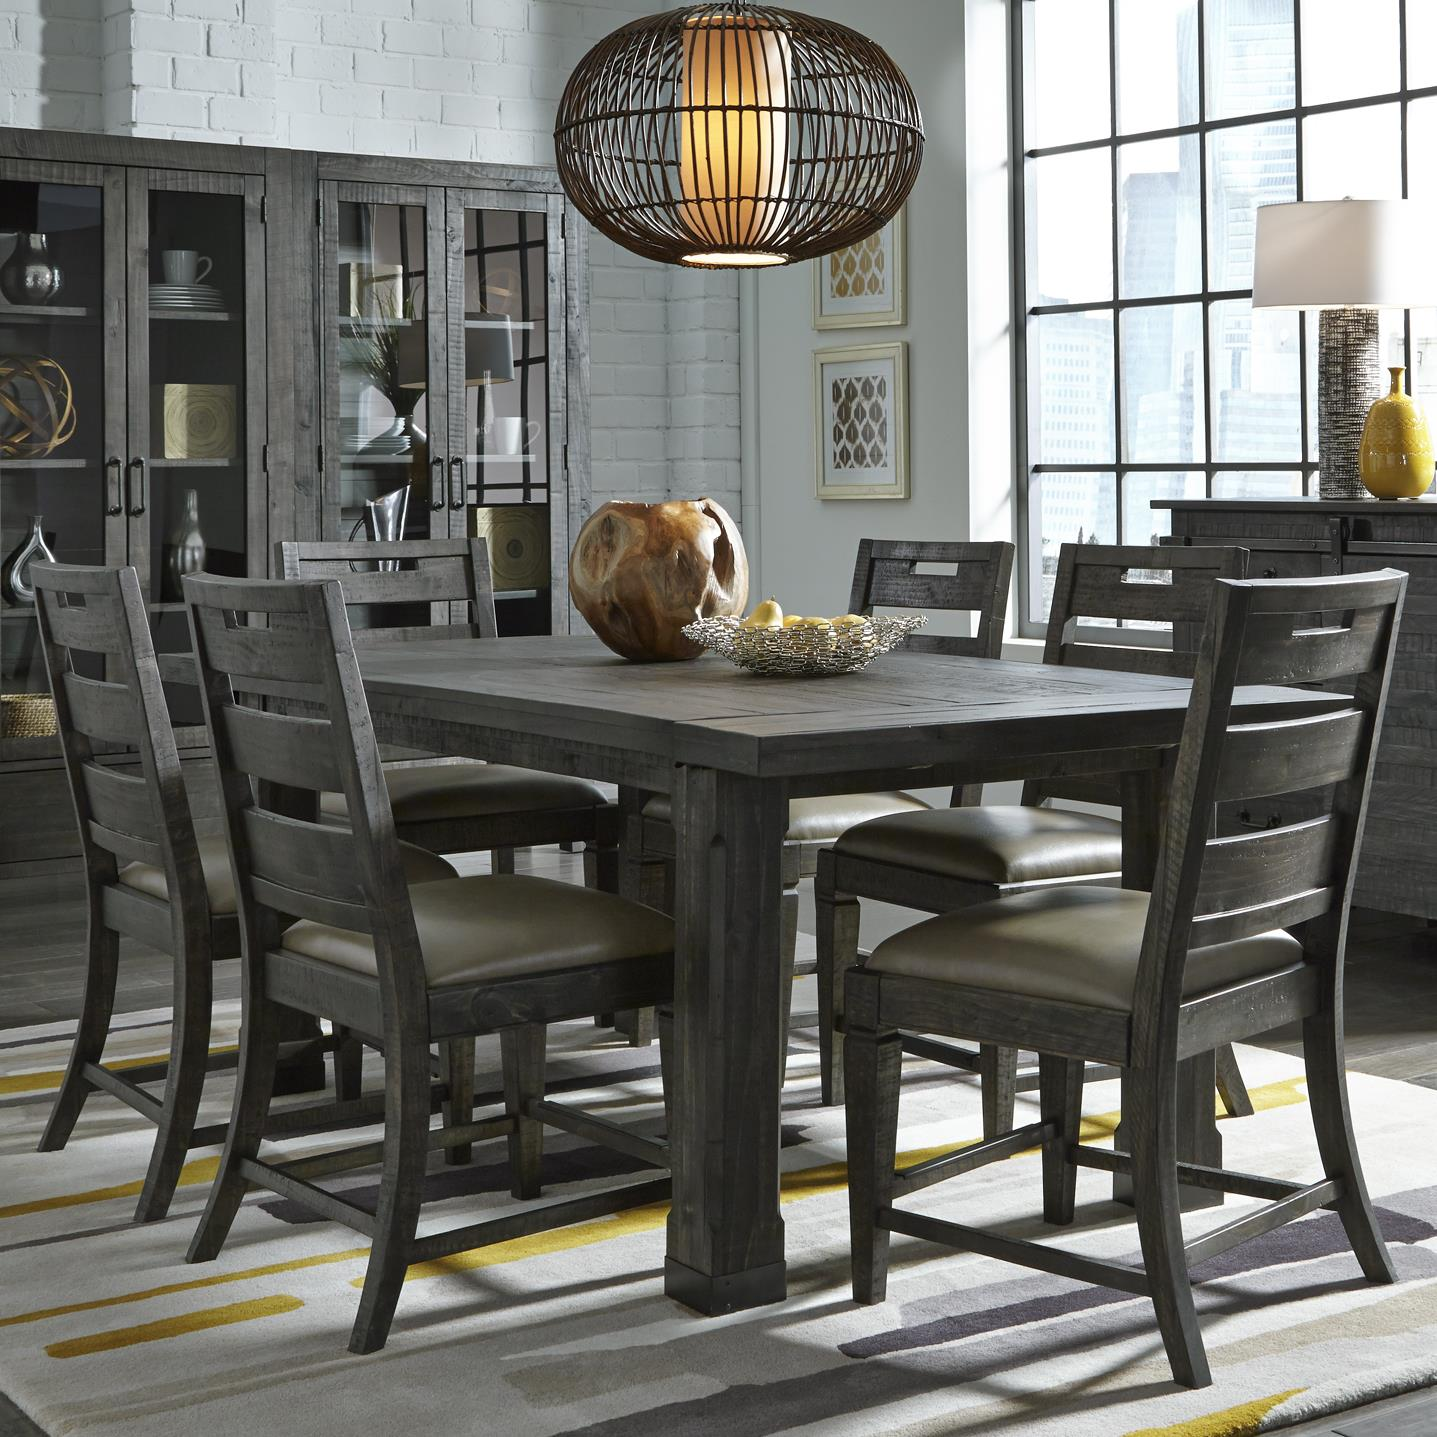 Abington 7 Pc Dining Set by Magnussen Home at Value City Furniture